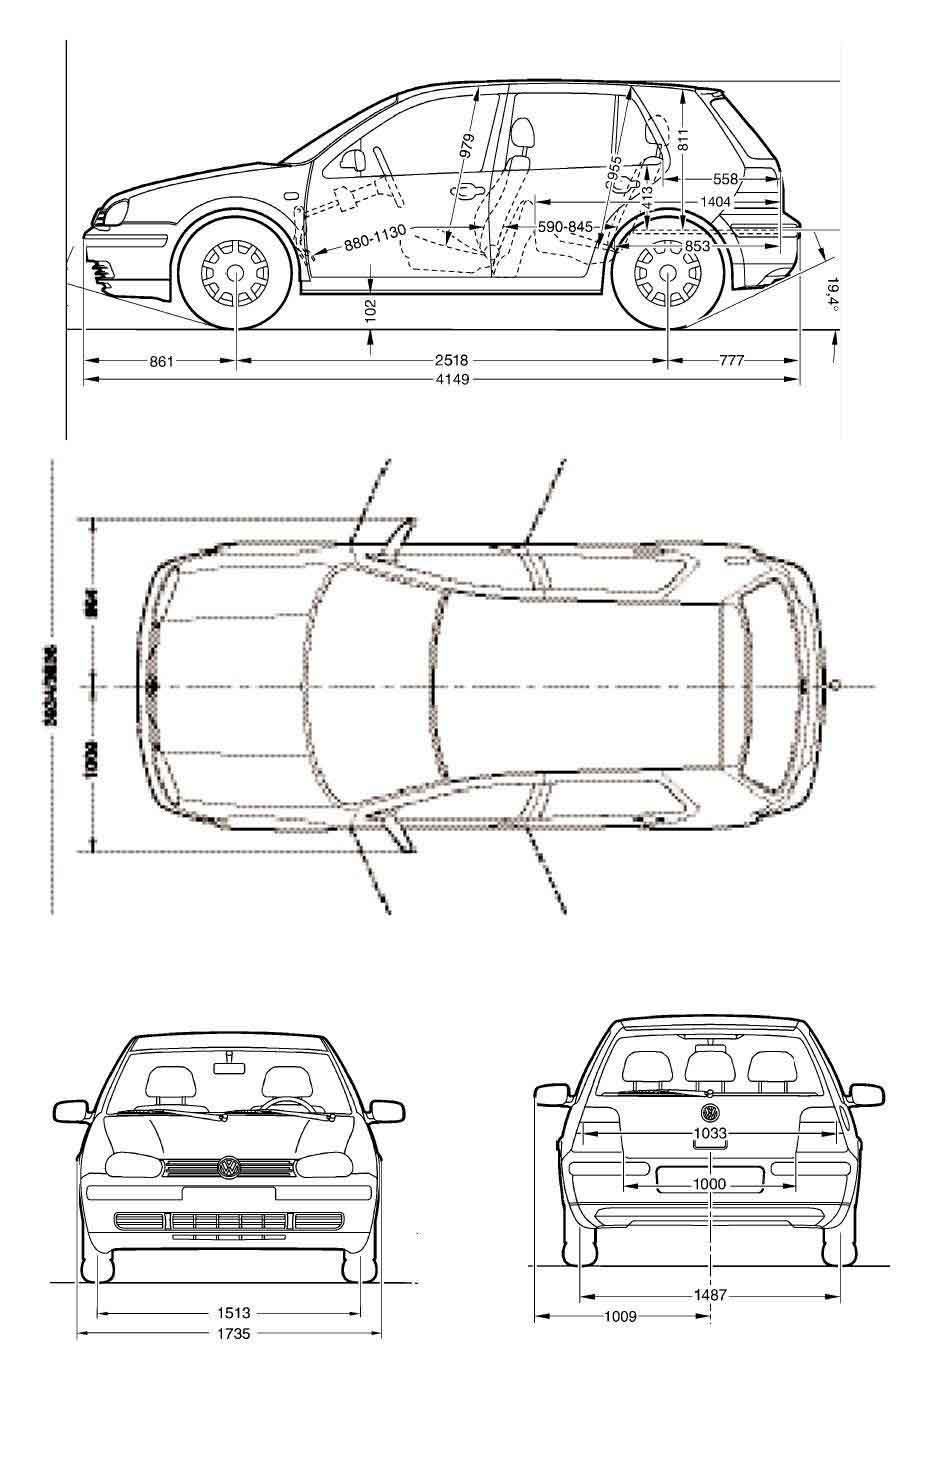 Blueprint volkswagen golf 4 volkswagen golf 4 vwgolf4g malvernweather Image collections